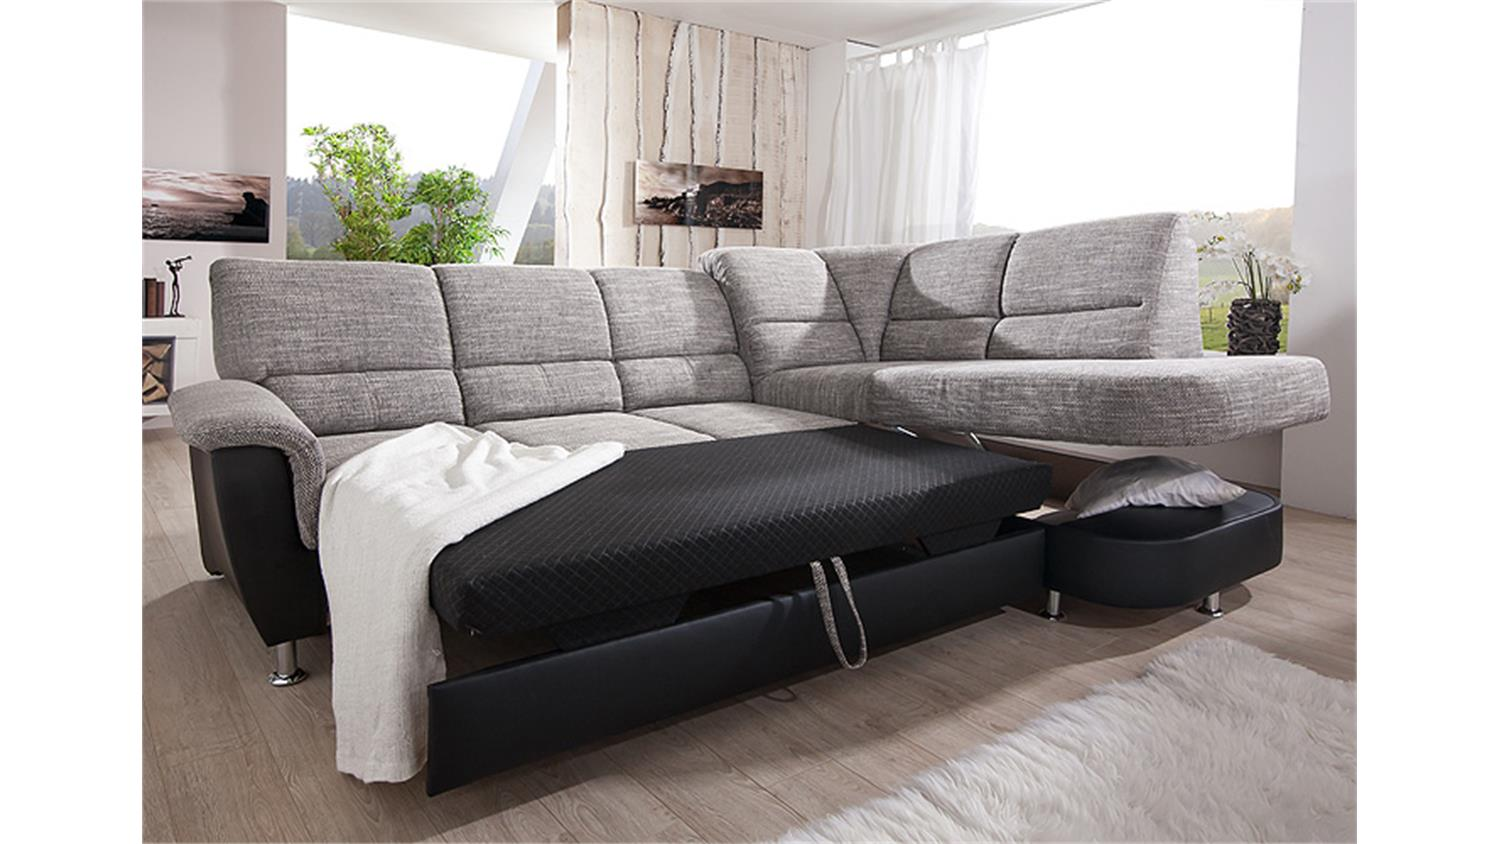 ecksofa pisa eckgarnitur l sofa grau schwarz bettfunktion bettkasten. Black Bedroom Furniture Sets. Home Design Ideas